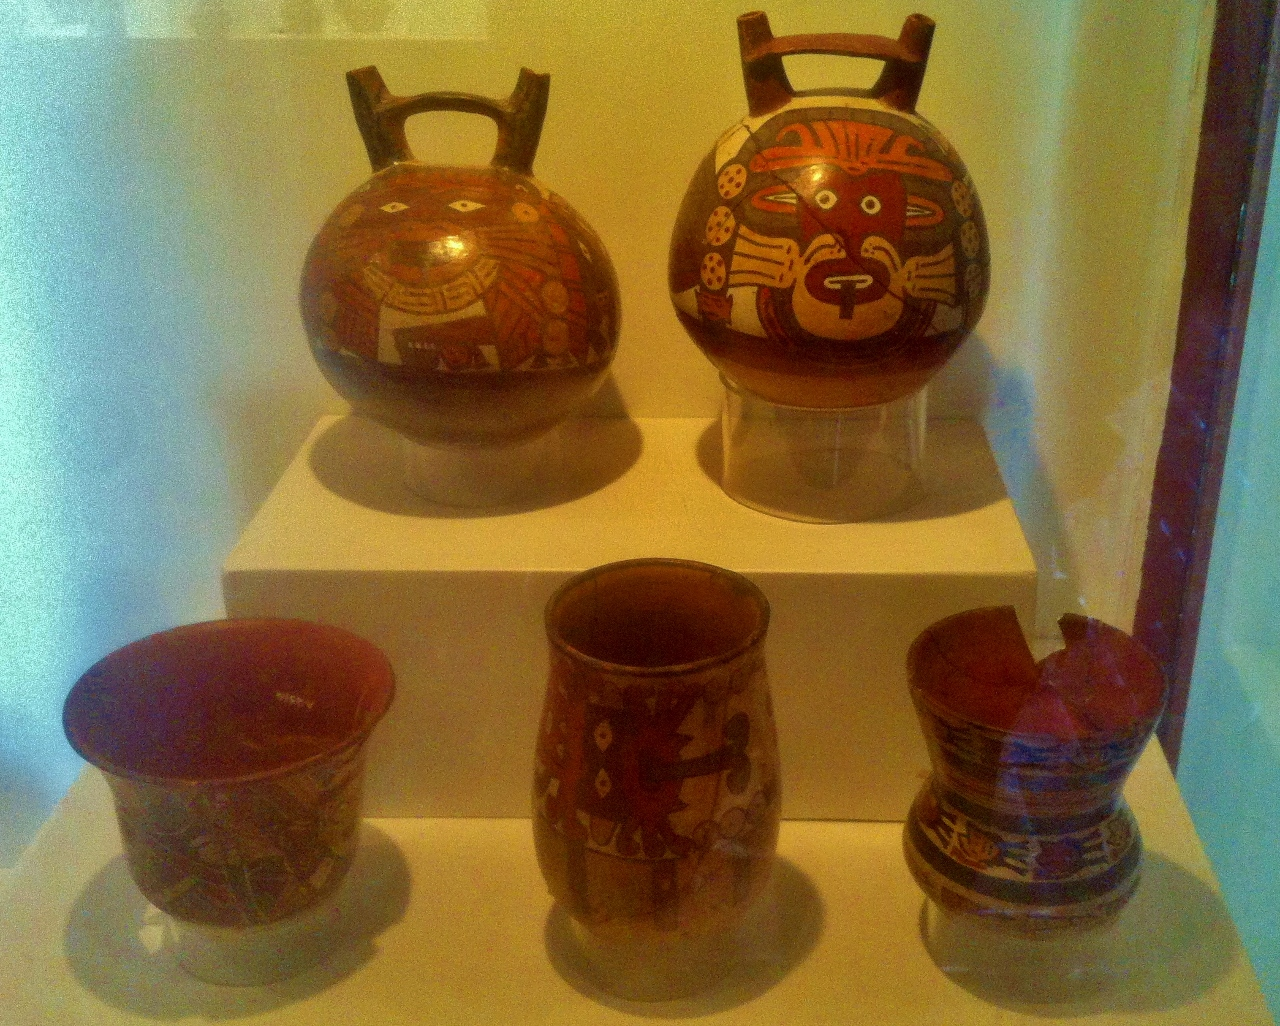 Pottery from nearly every human civilization in Perú's recorded human history